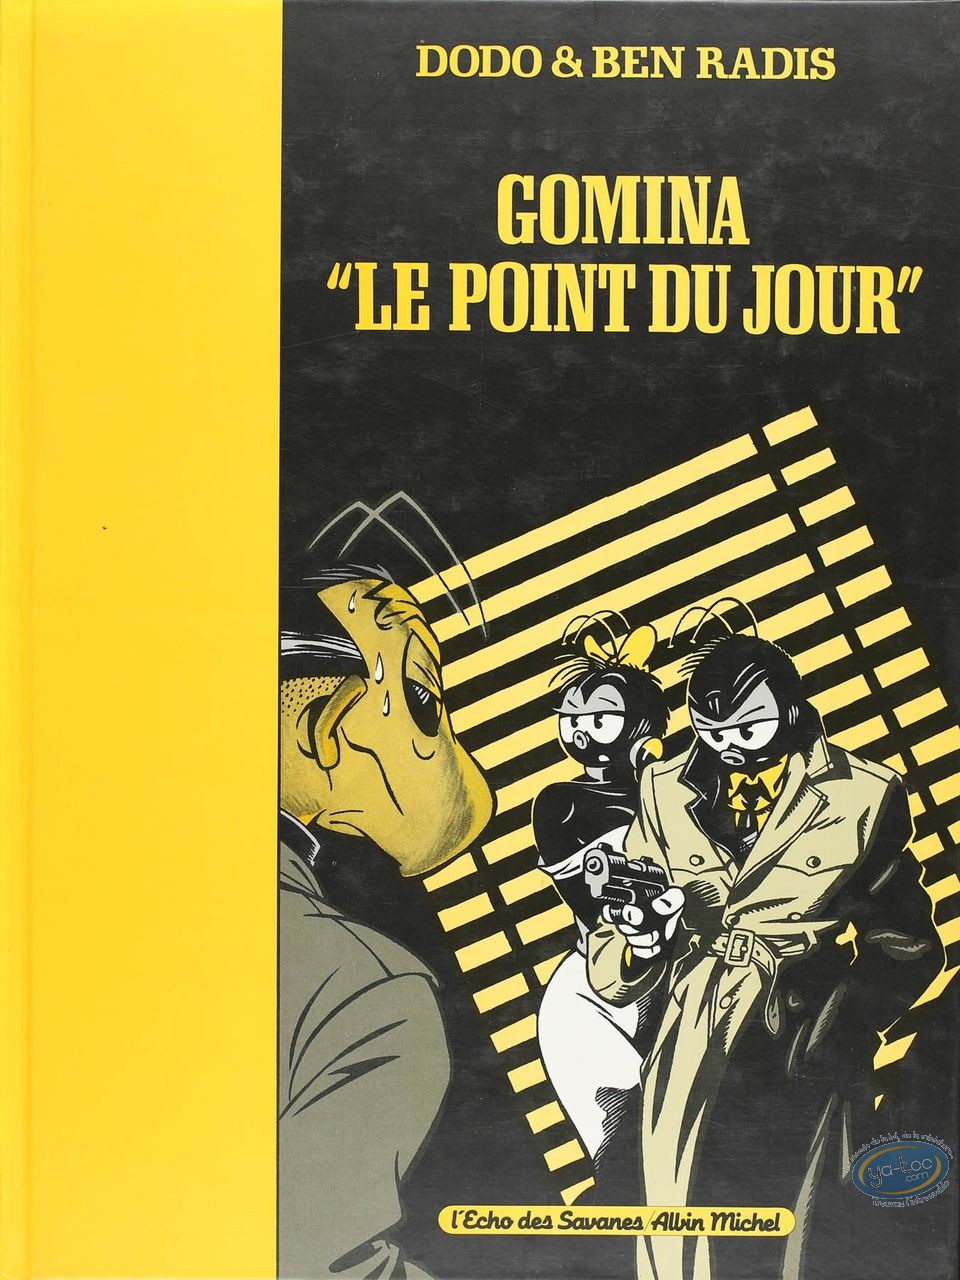 Listed European Comic Books, Gomina : Le Point du Jour